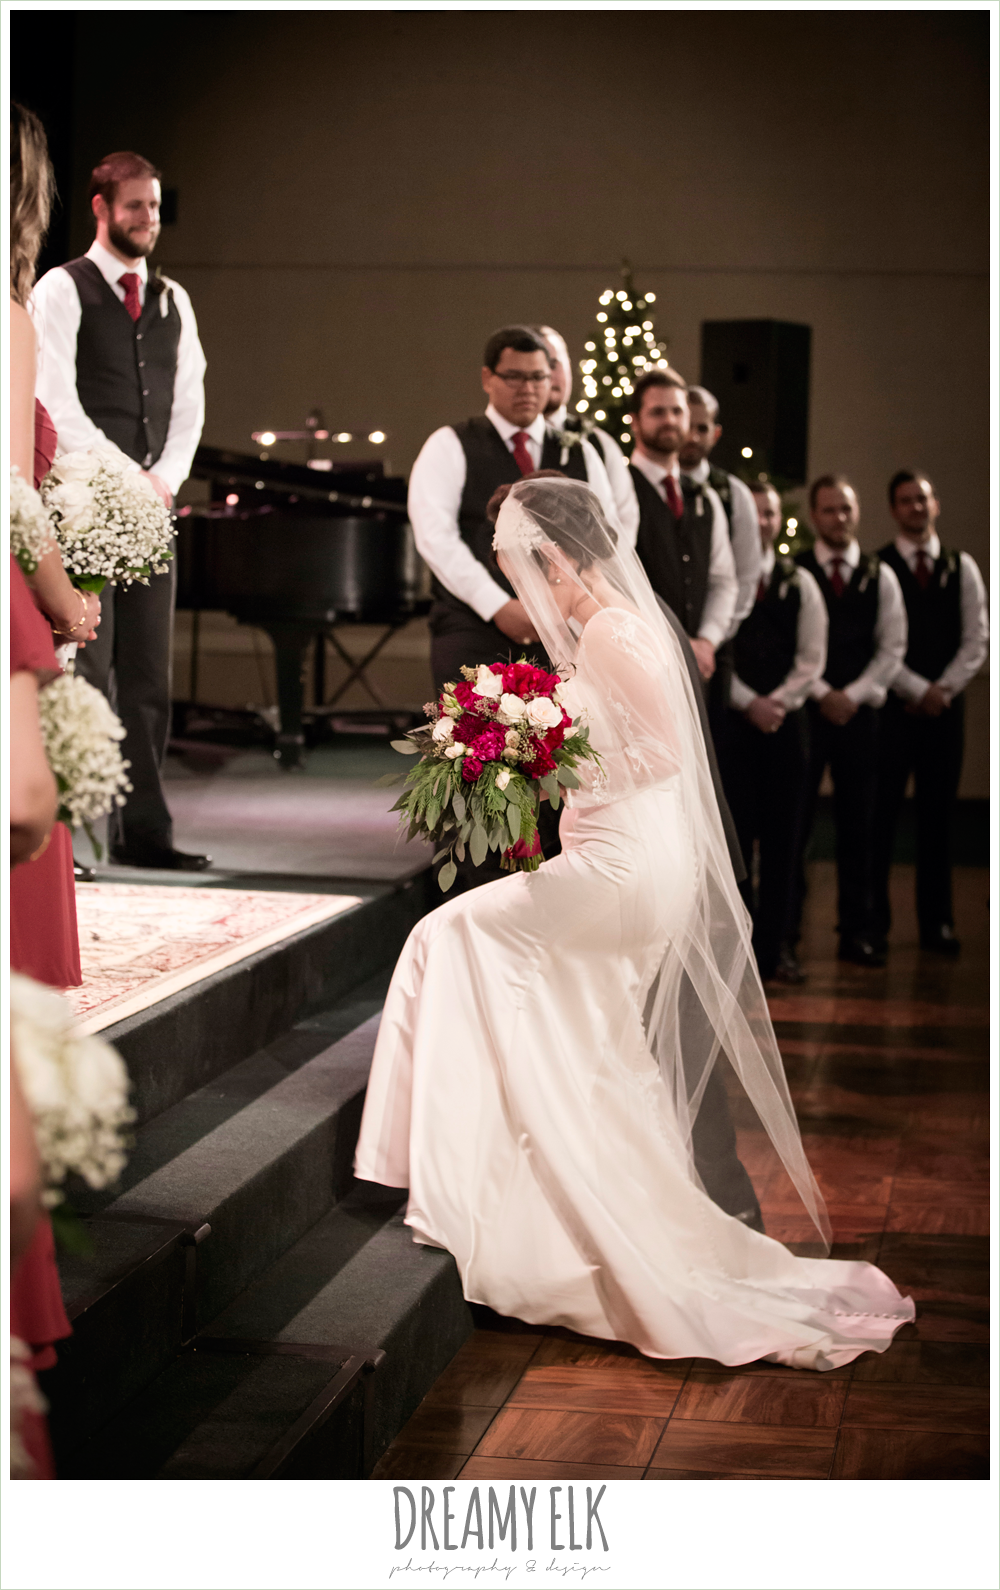 bride and groom during wedding ceremony, winter december church wedding photo {dreamy elk photography and design}